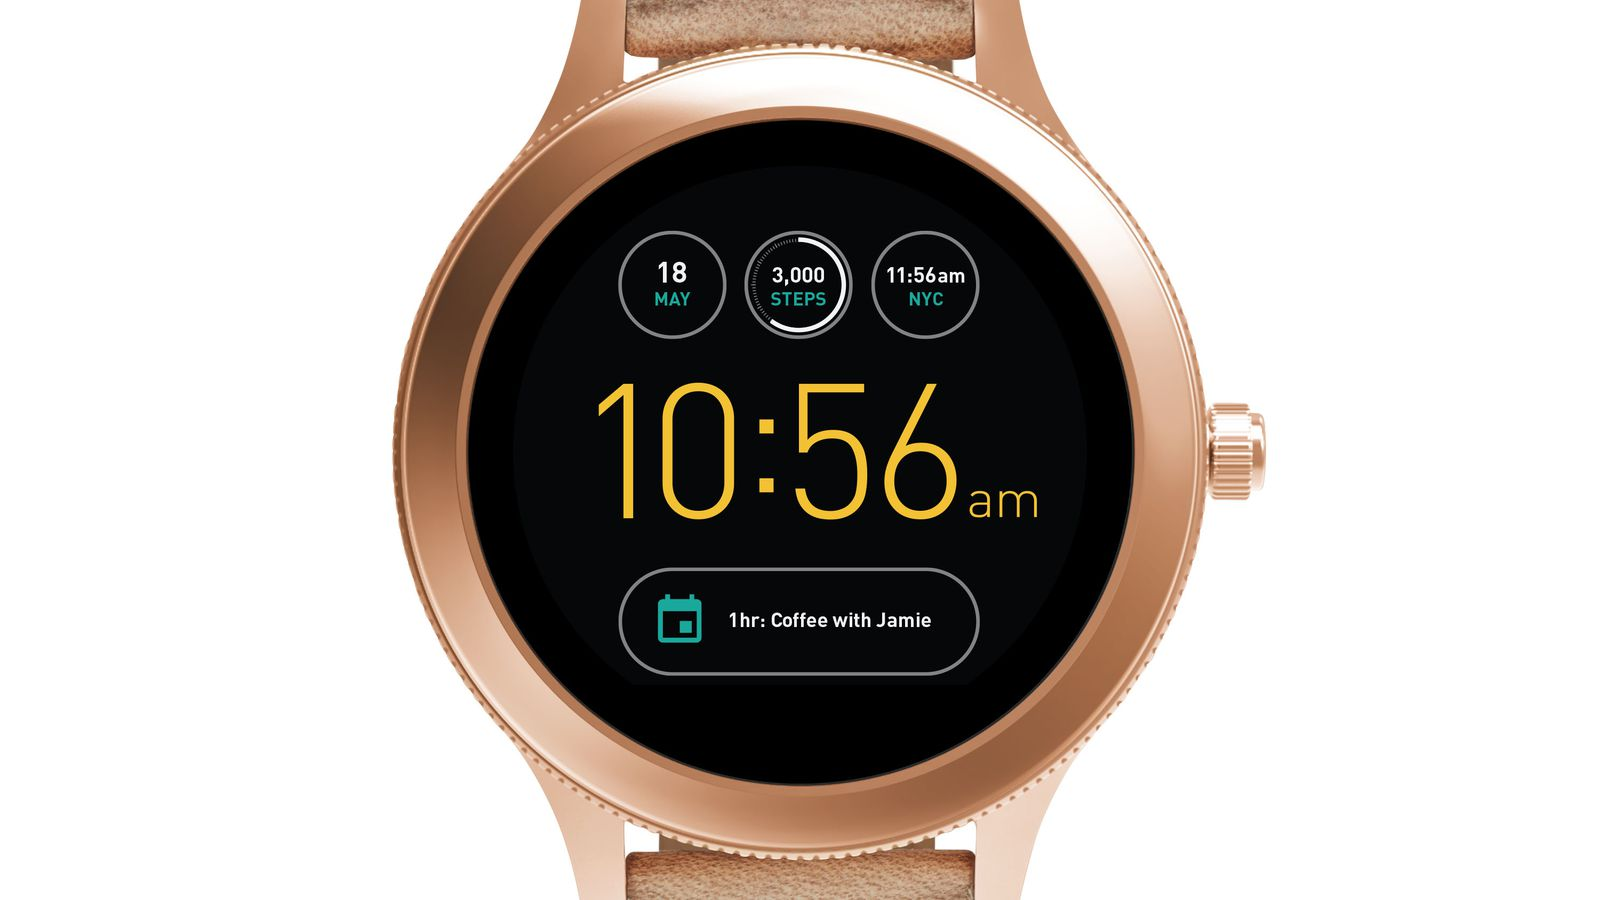 Android Wear has Made it Trivially Easy for Fashion Companies to 'Make' Tech Products